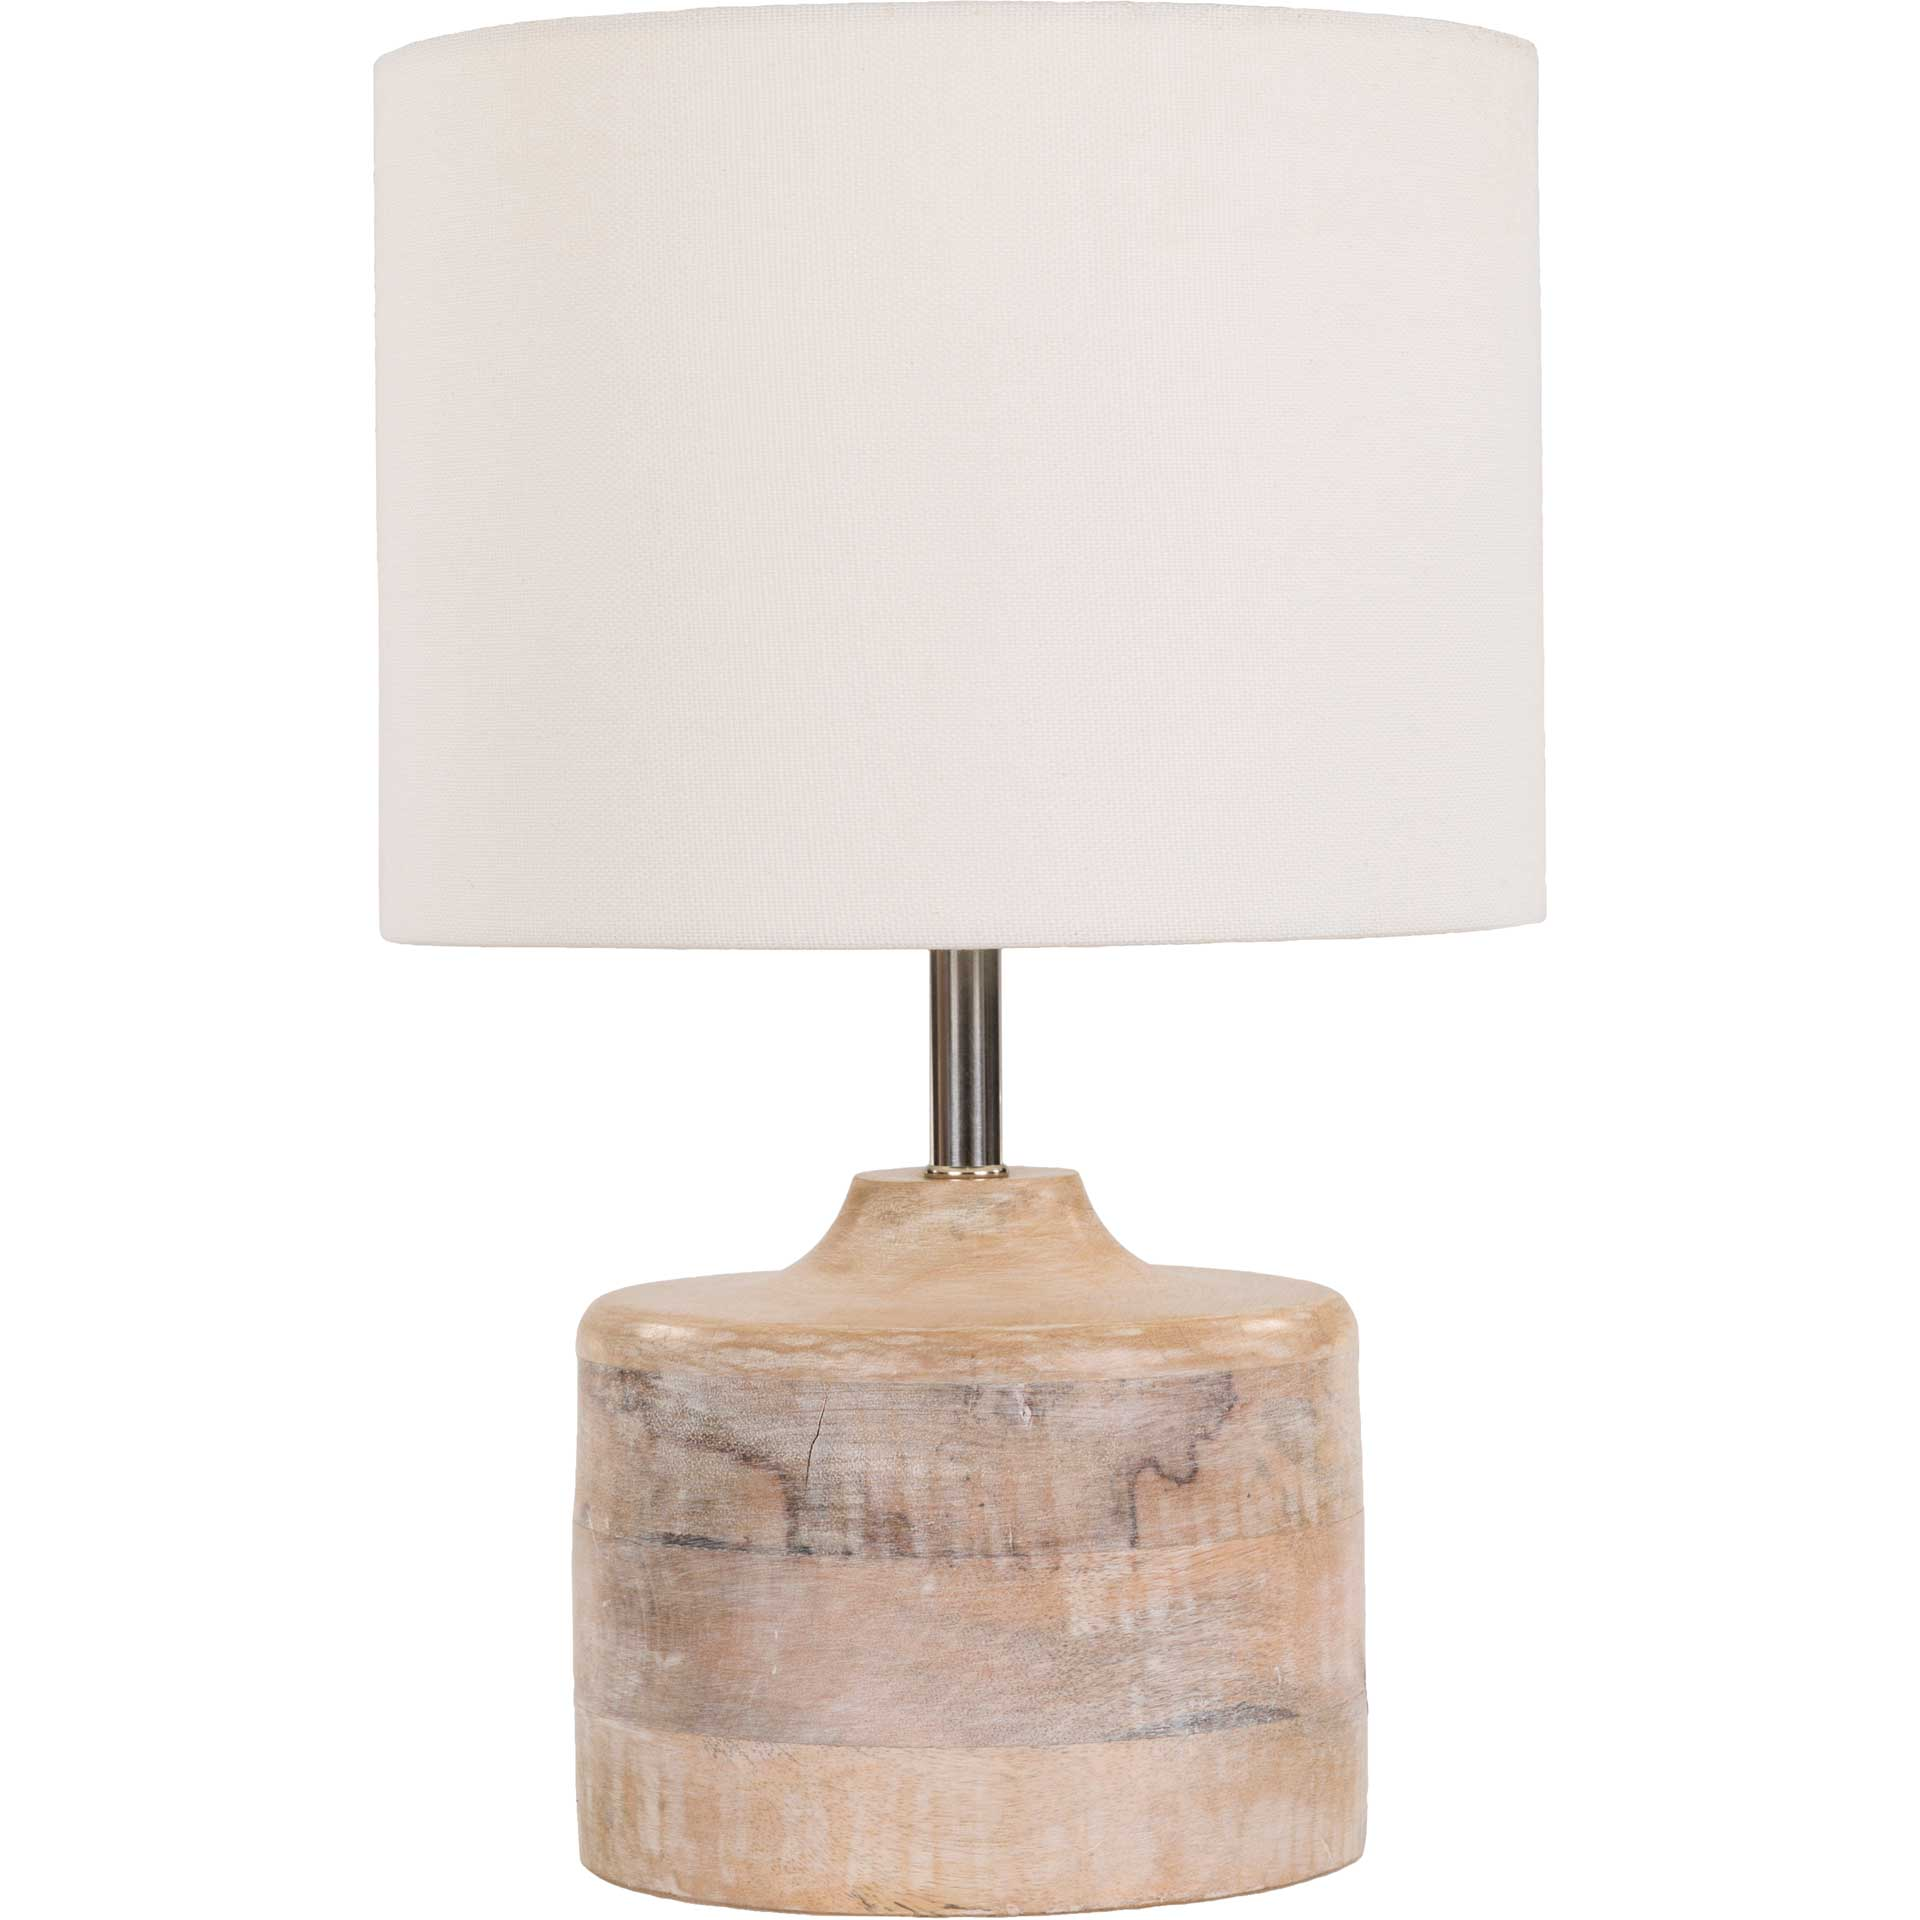 Cohen Table Lamp White/Natural